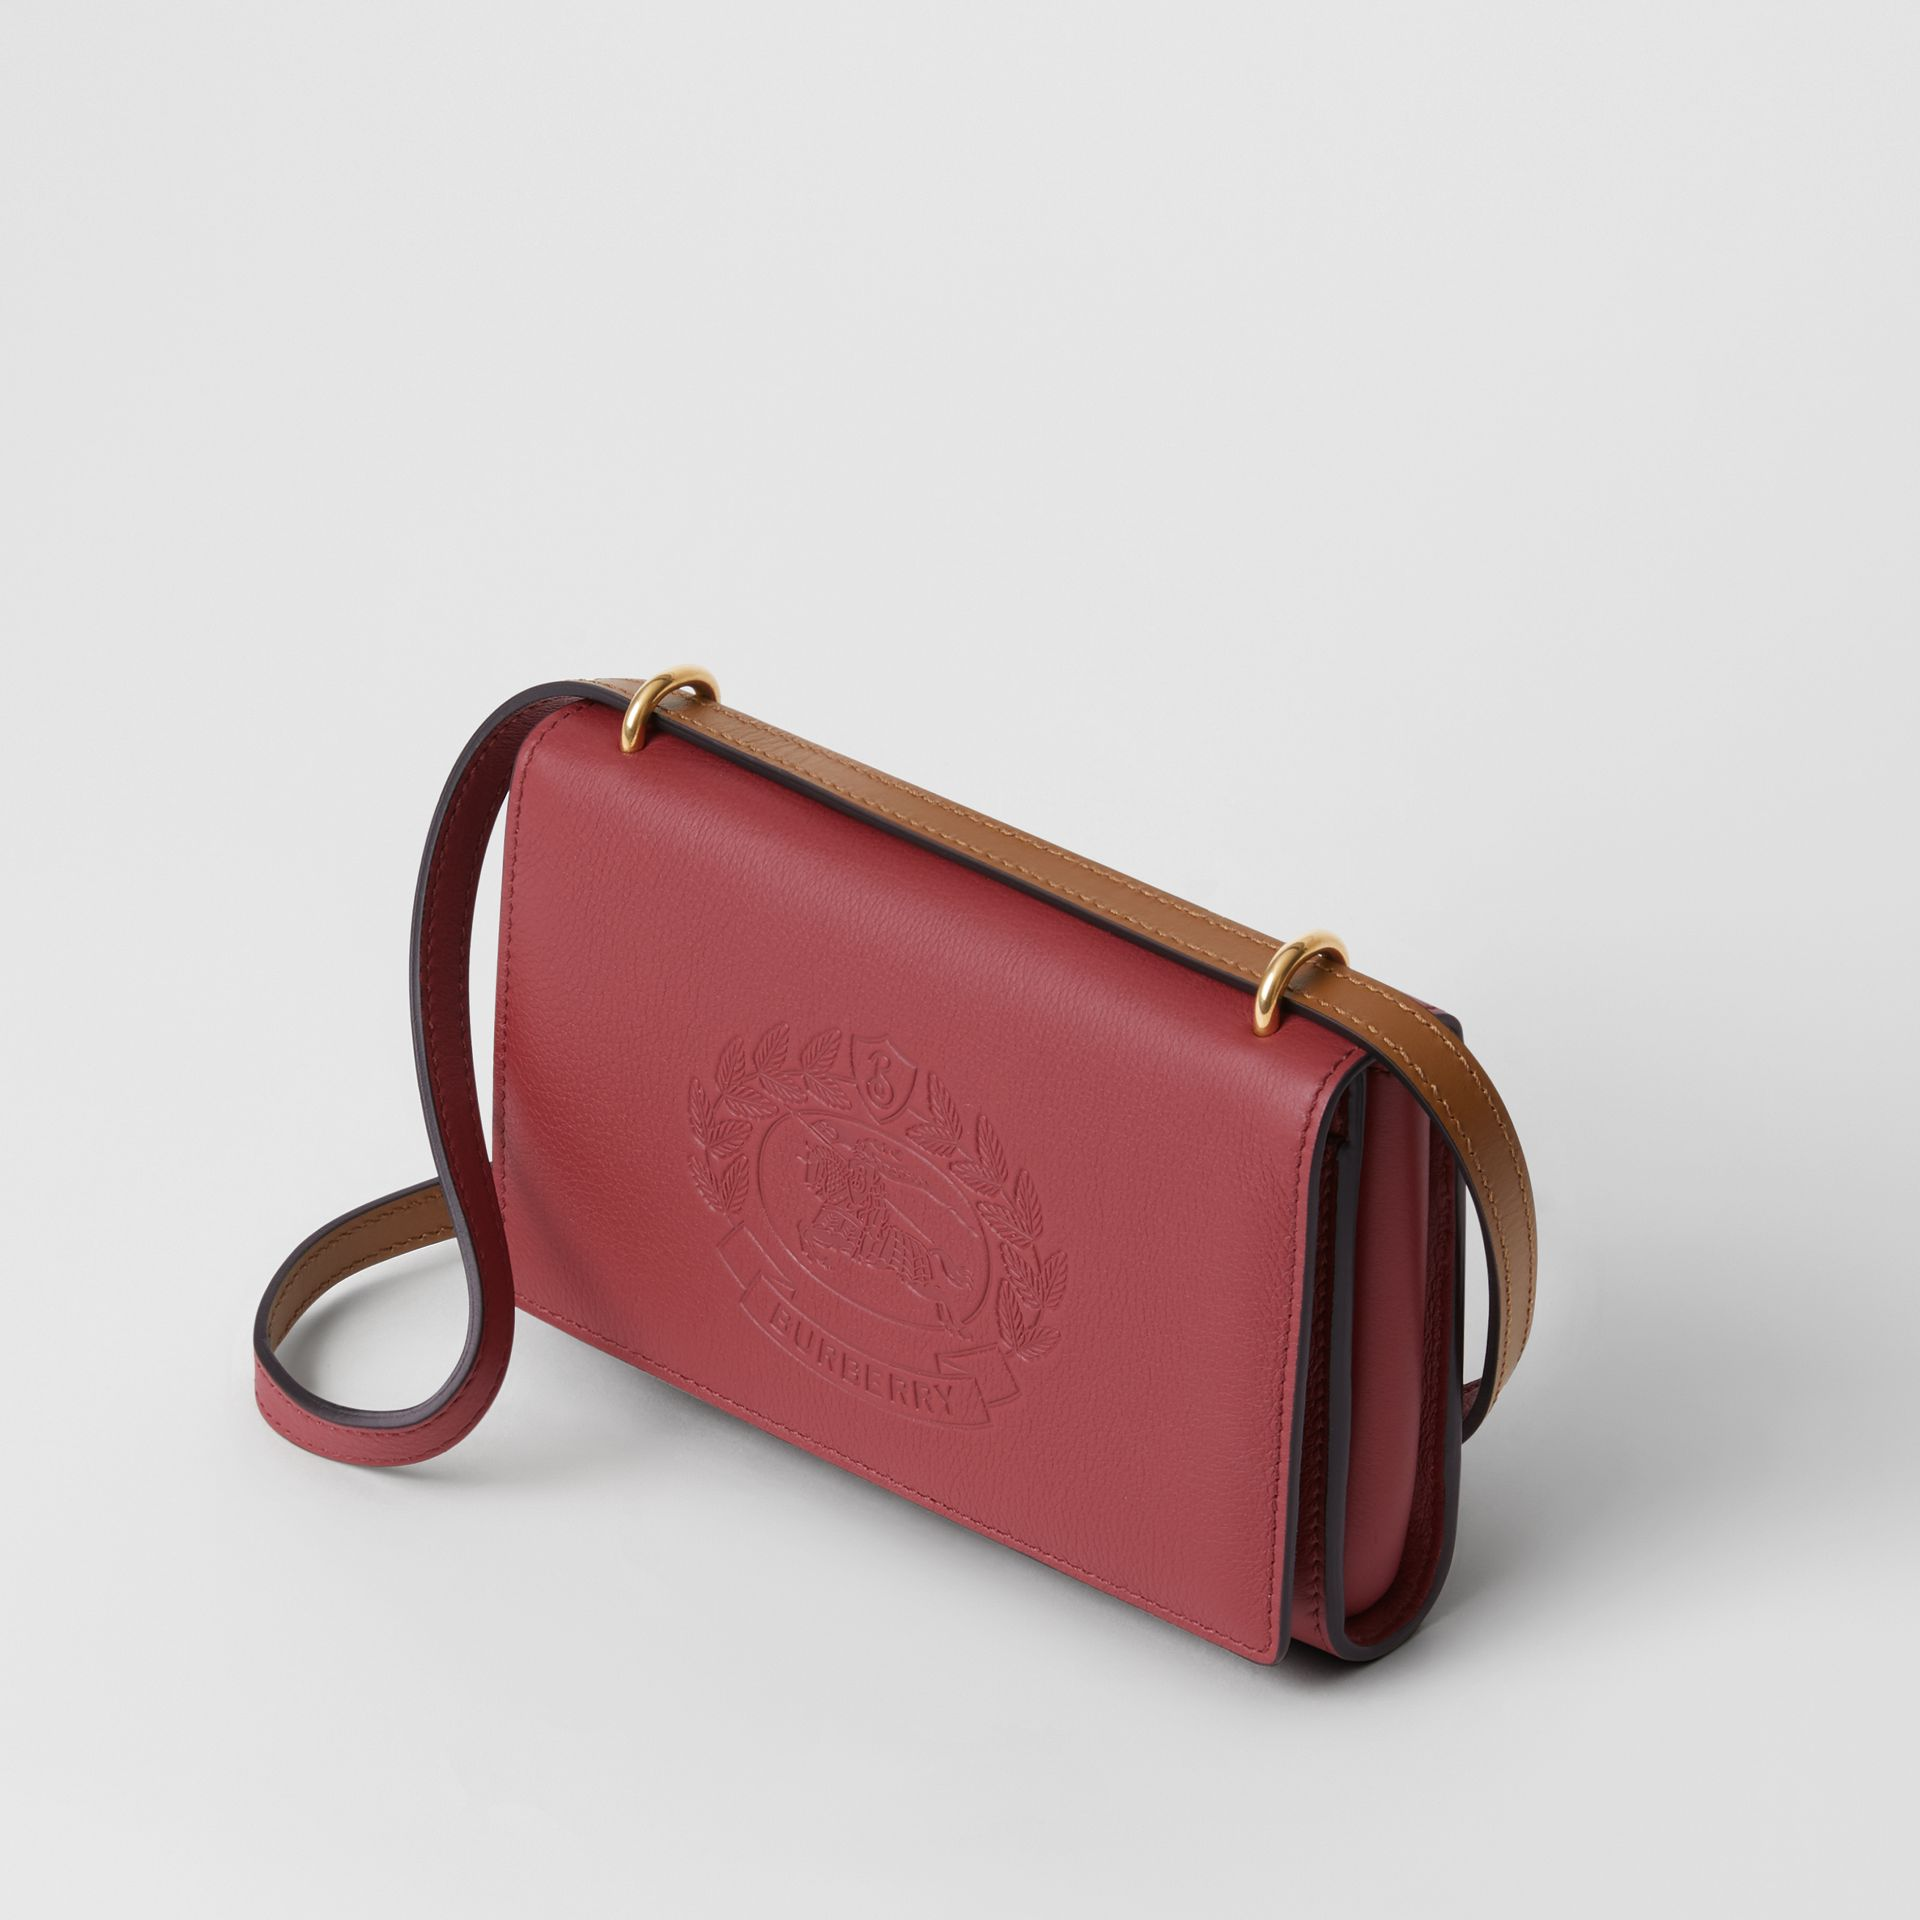 Embossed Crest Leather Wallet with Detachable Strap in Crimson - Women | Burberry - gallery image 2